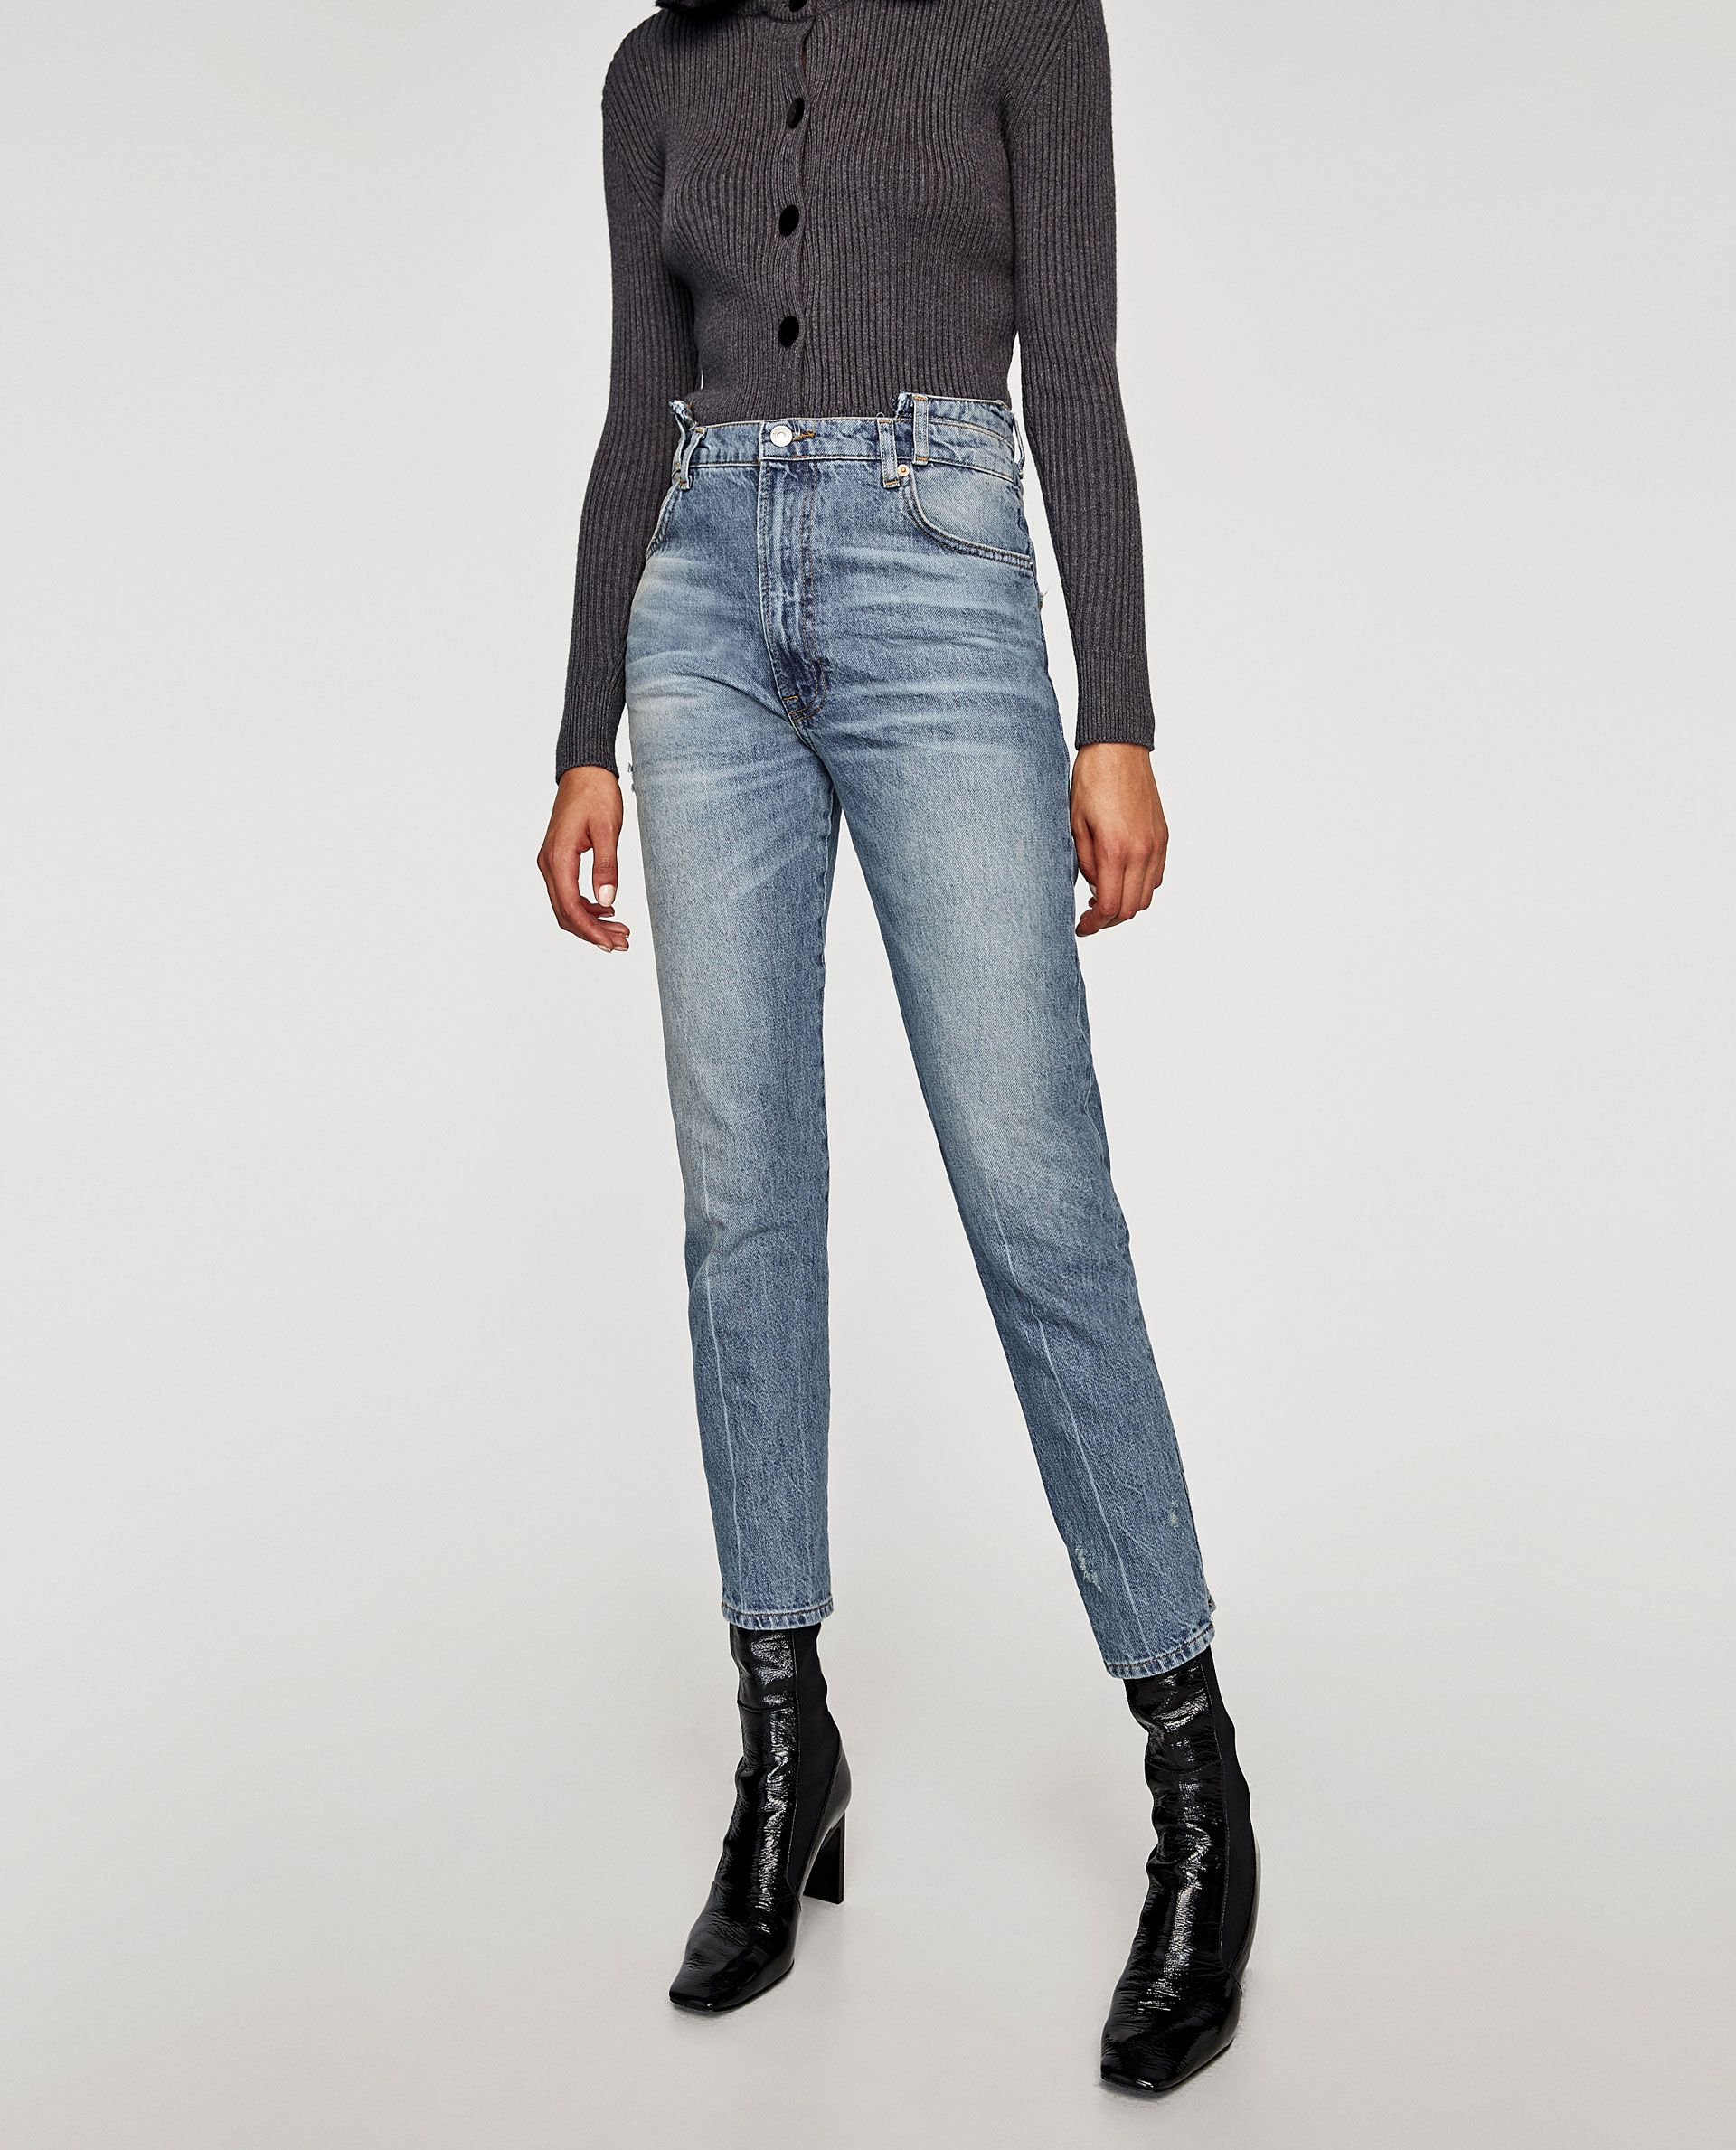 8f39669e Image 2 of THE RECONSTRUCTED VINTAGE HIGH WAIST JEANS from Zara ...